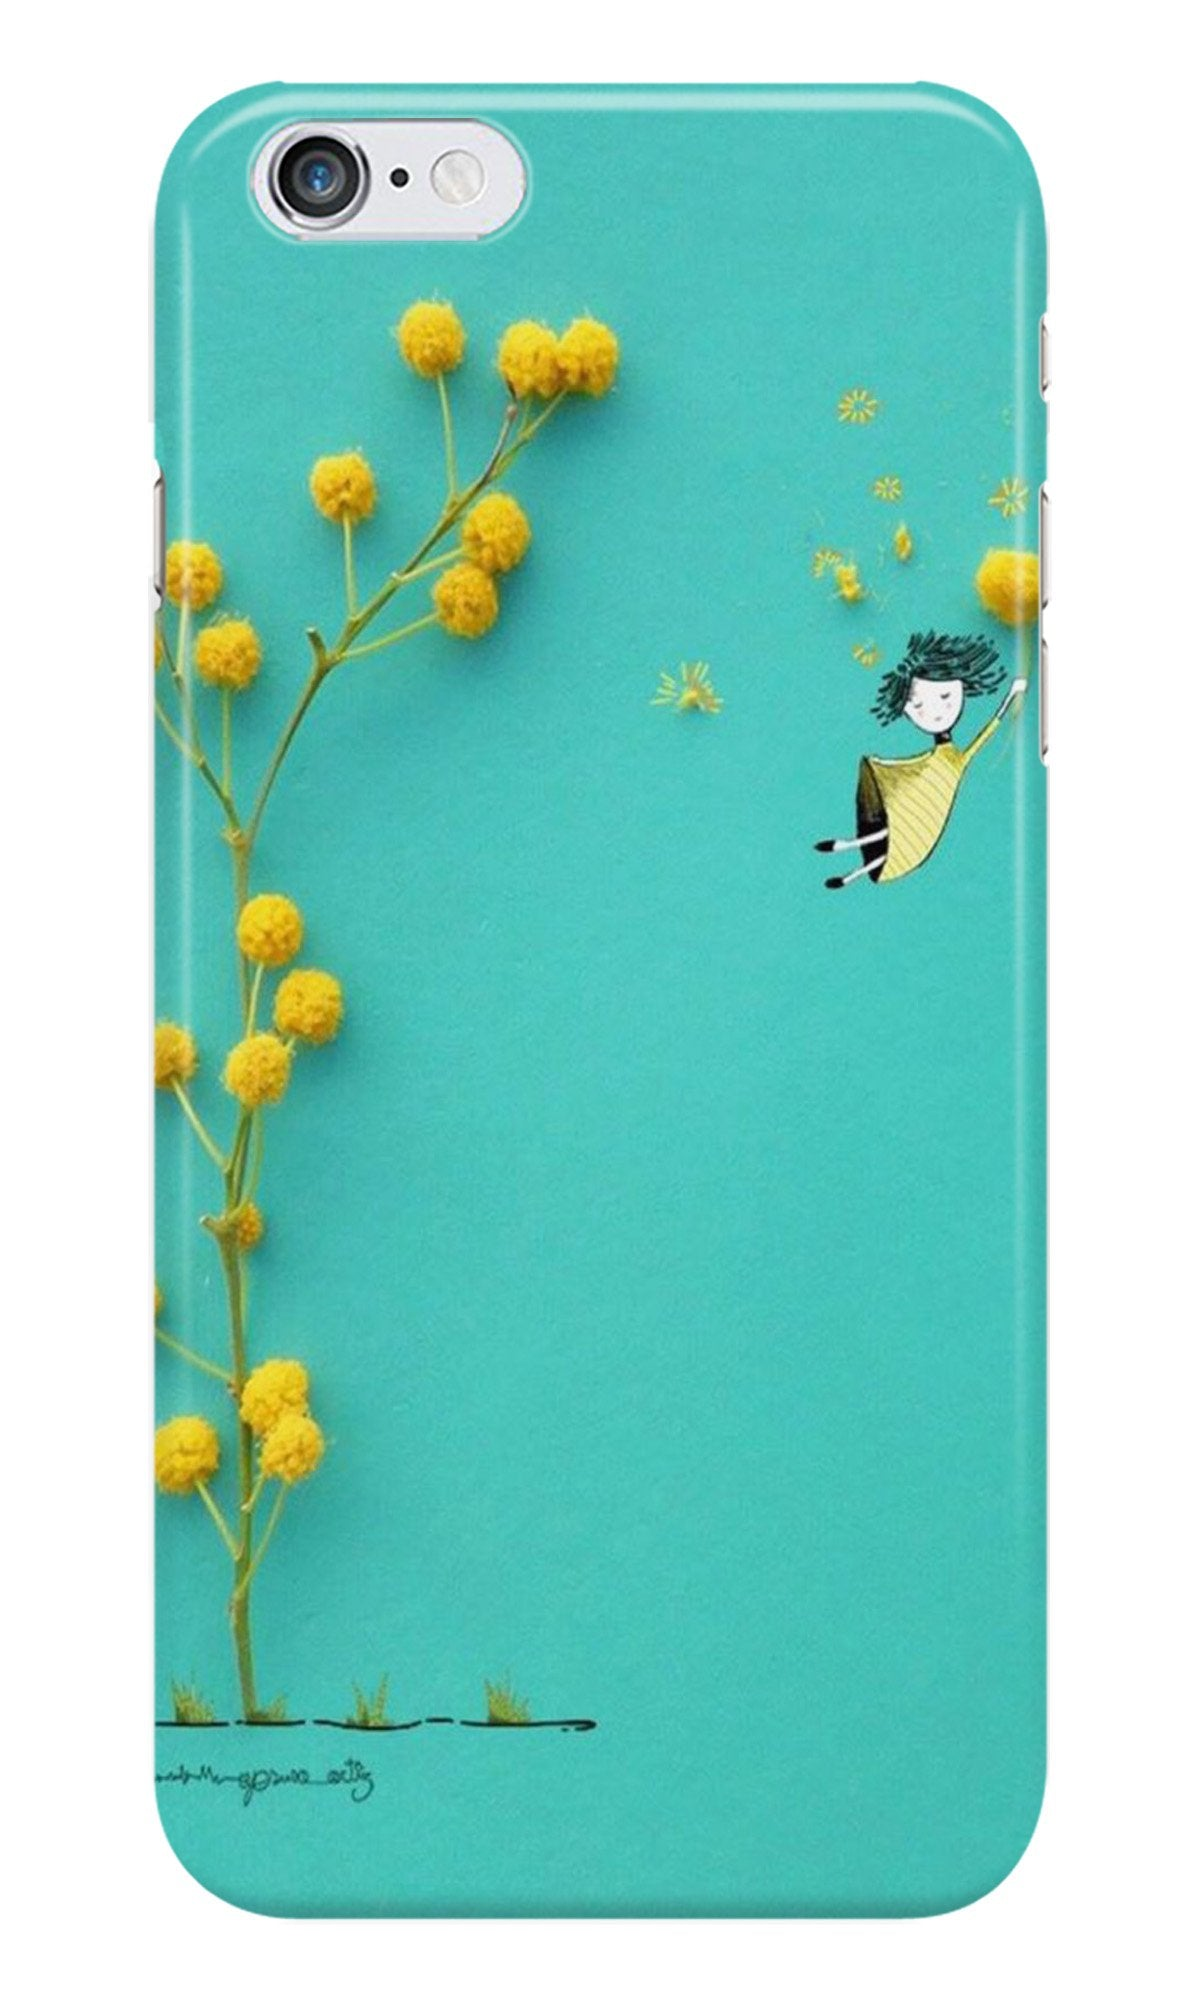 Flowers Girl Case for Iphone 6/6S (Design No. 216)